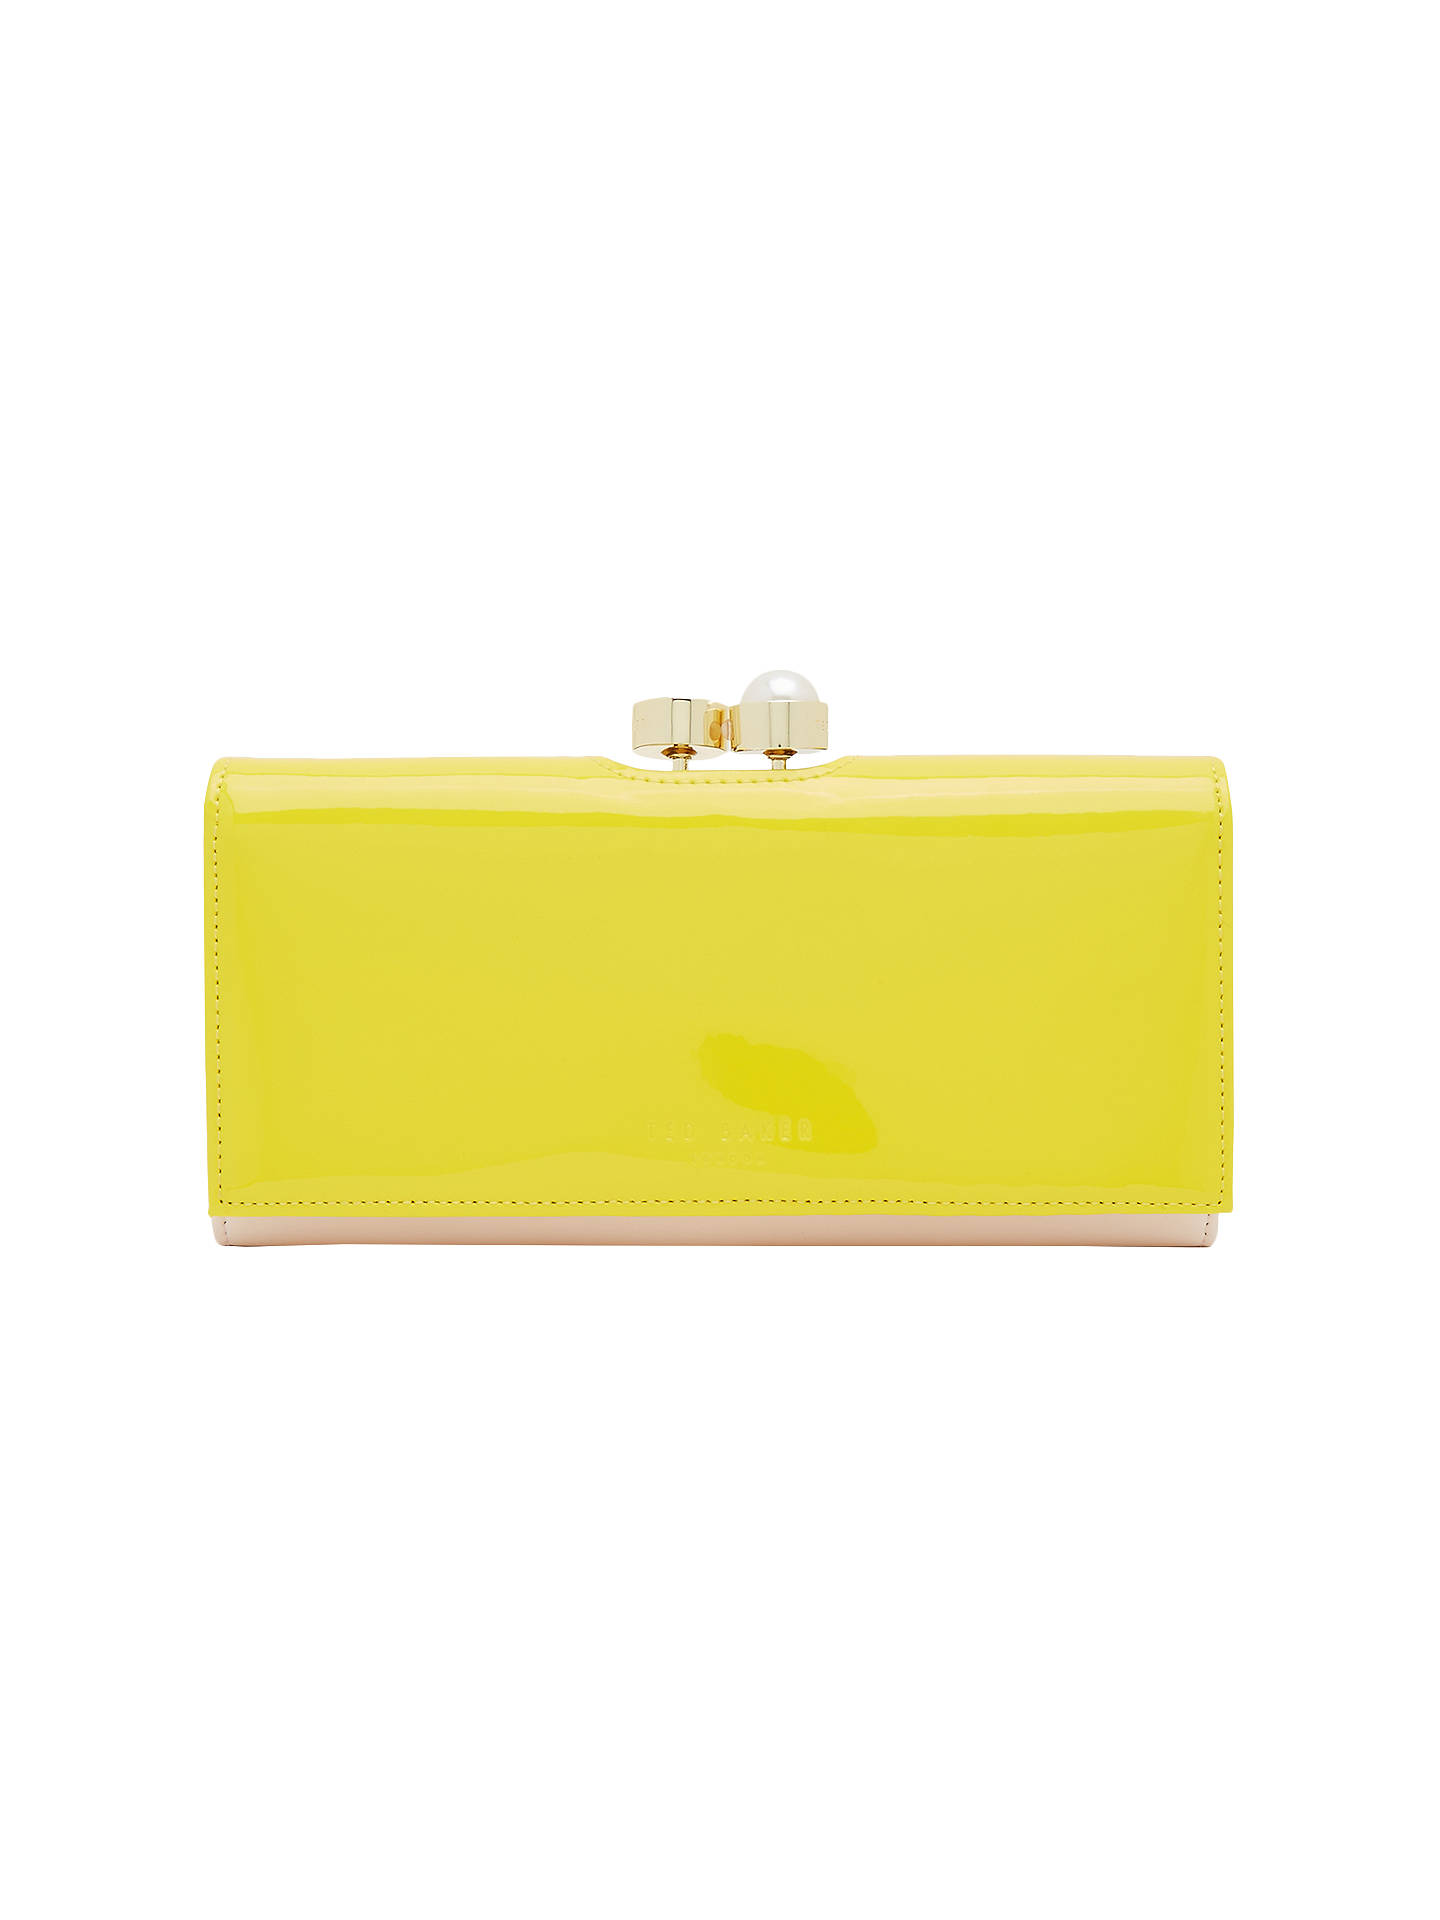 9f0ca812871 Buy Ted Baker Cecilie Pearl Leather Matinee Purse, Yellow Online at  johnlewis.com ...